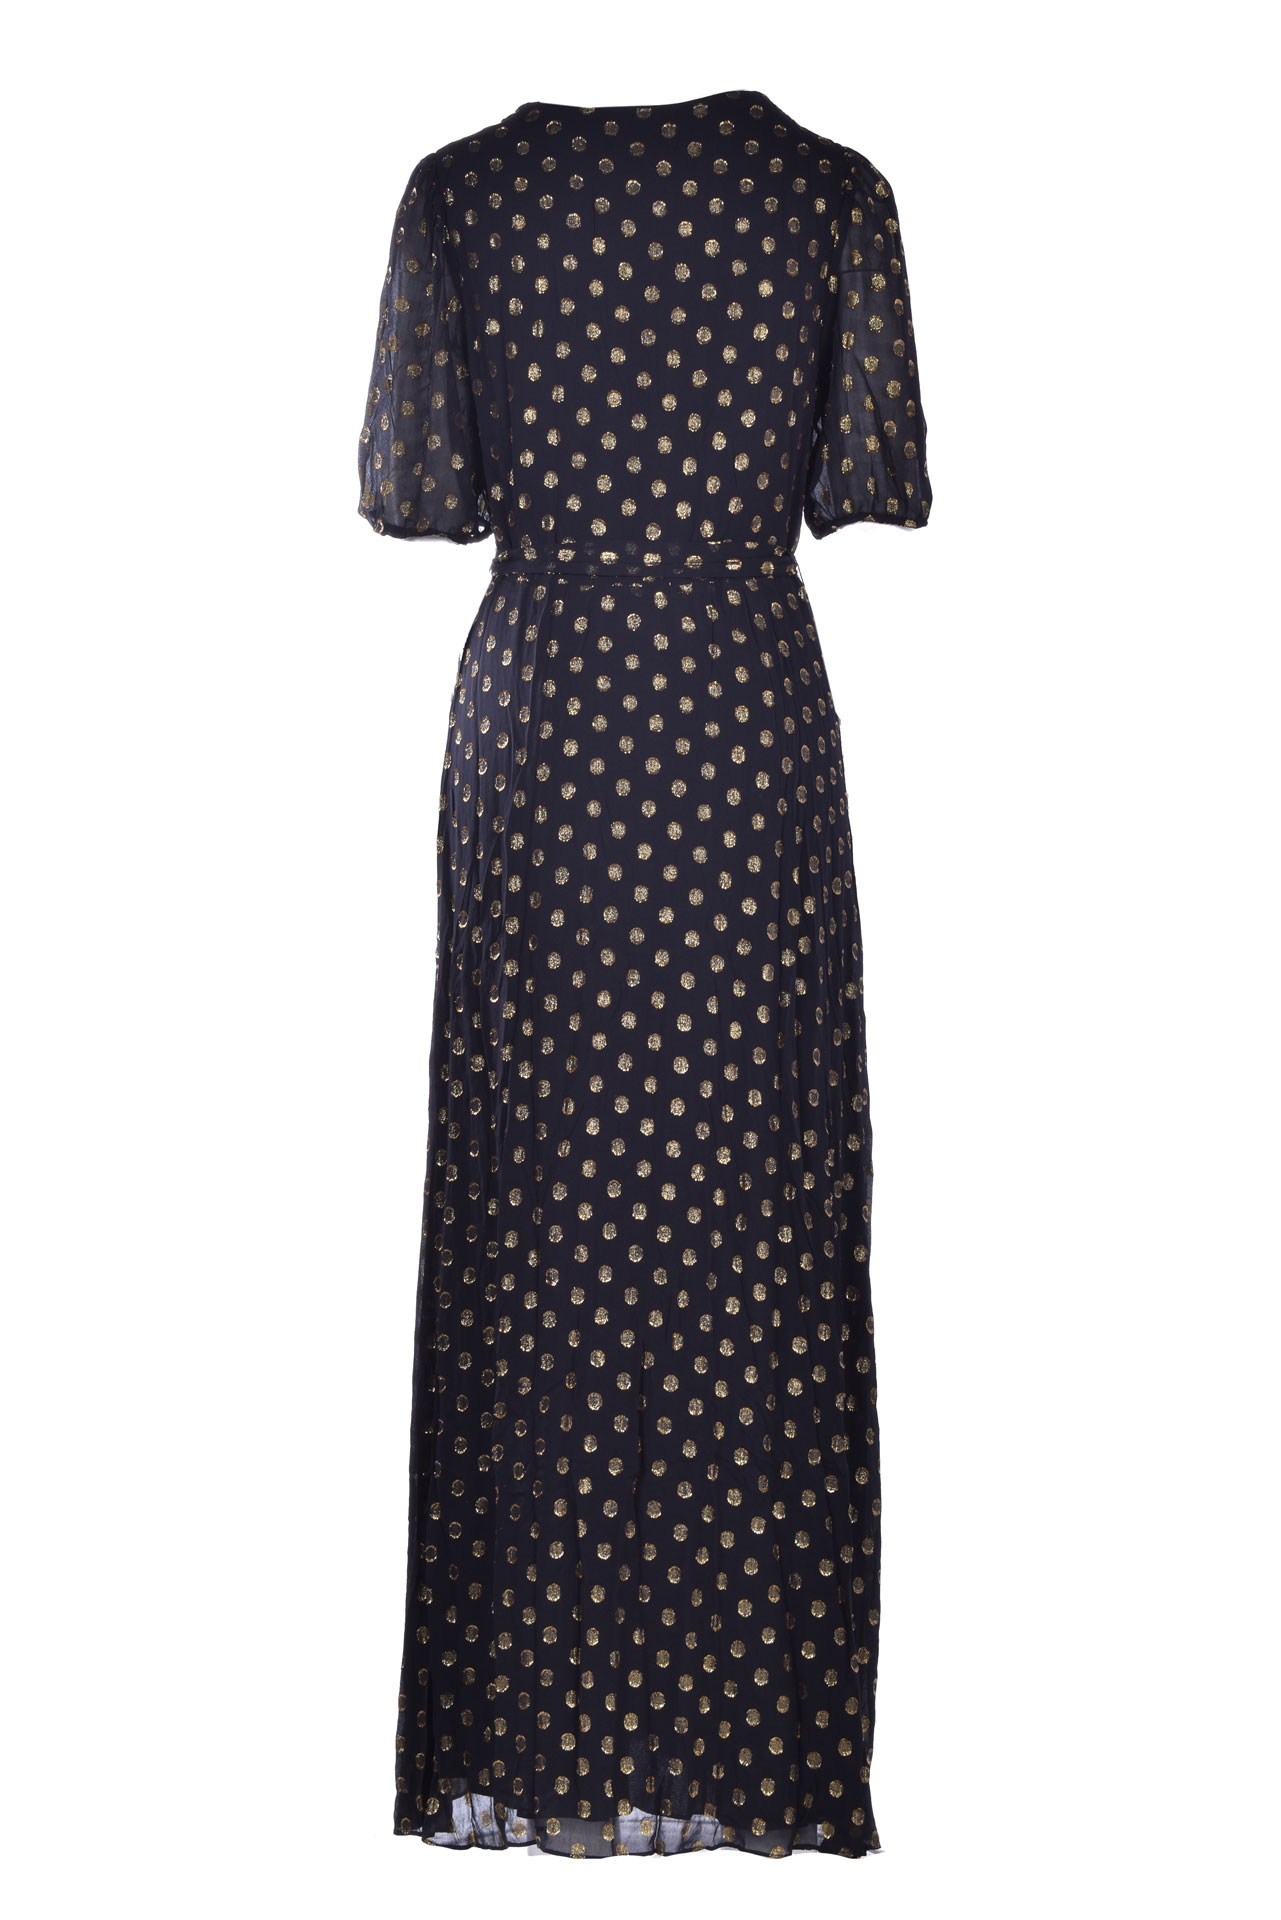 Long dress in black chiffon with gold polka dots ANTIK BATIK | Dresses | DOVA1LDRBLACK